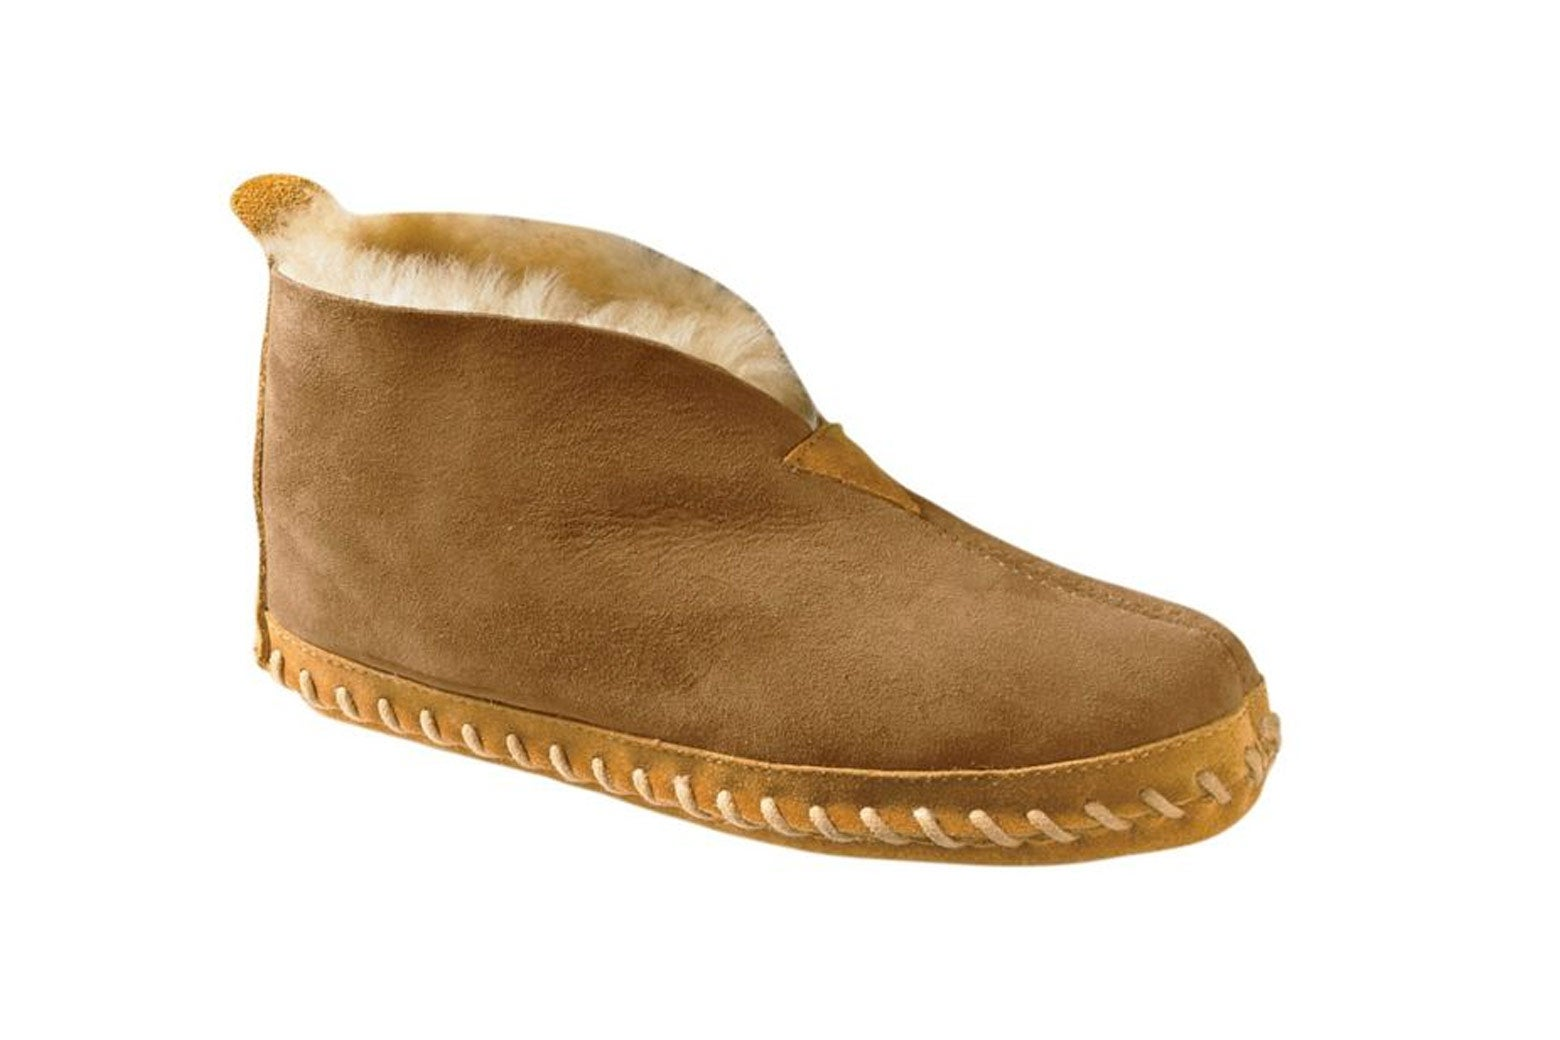 L.L. Bean Wicked Good Slippers.